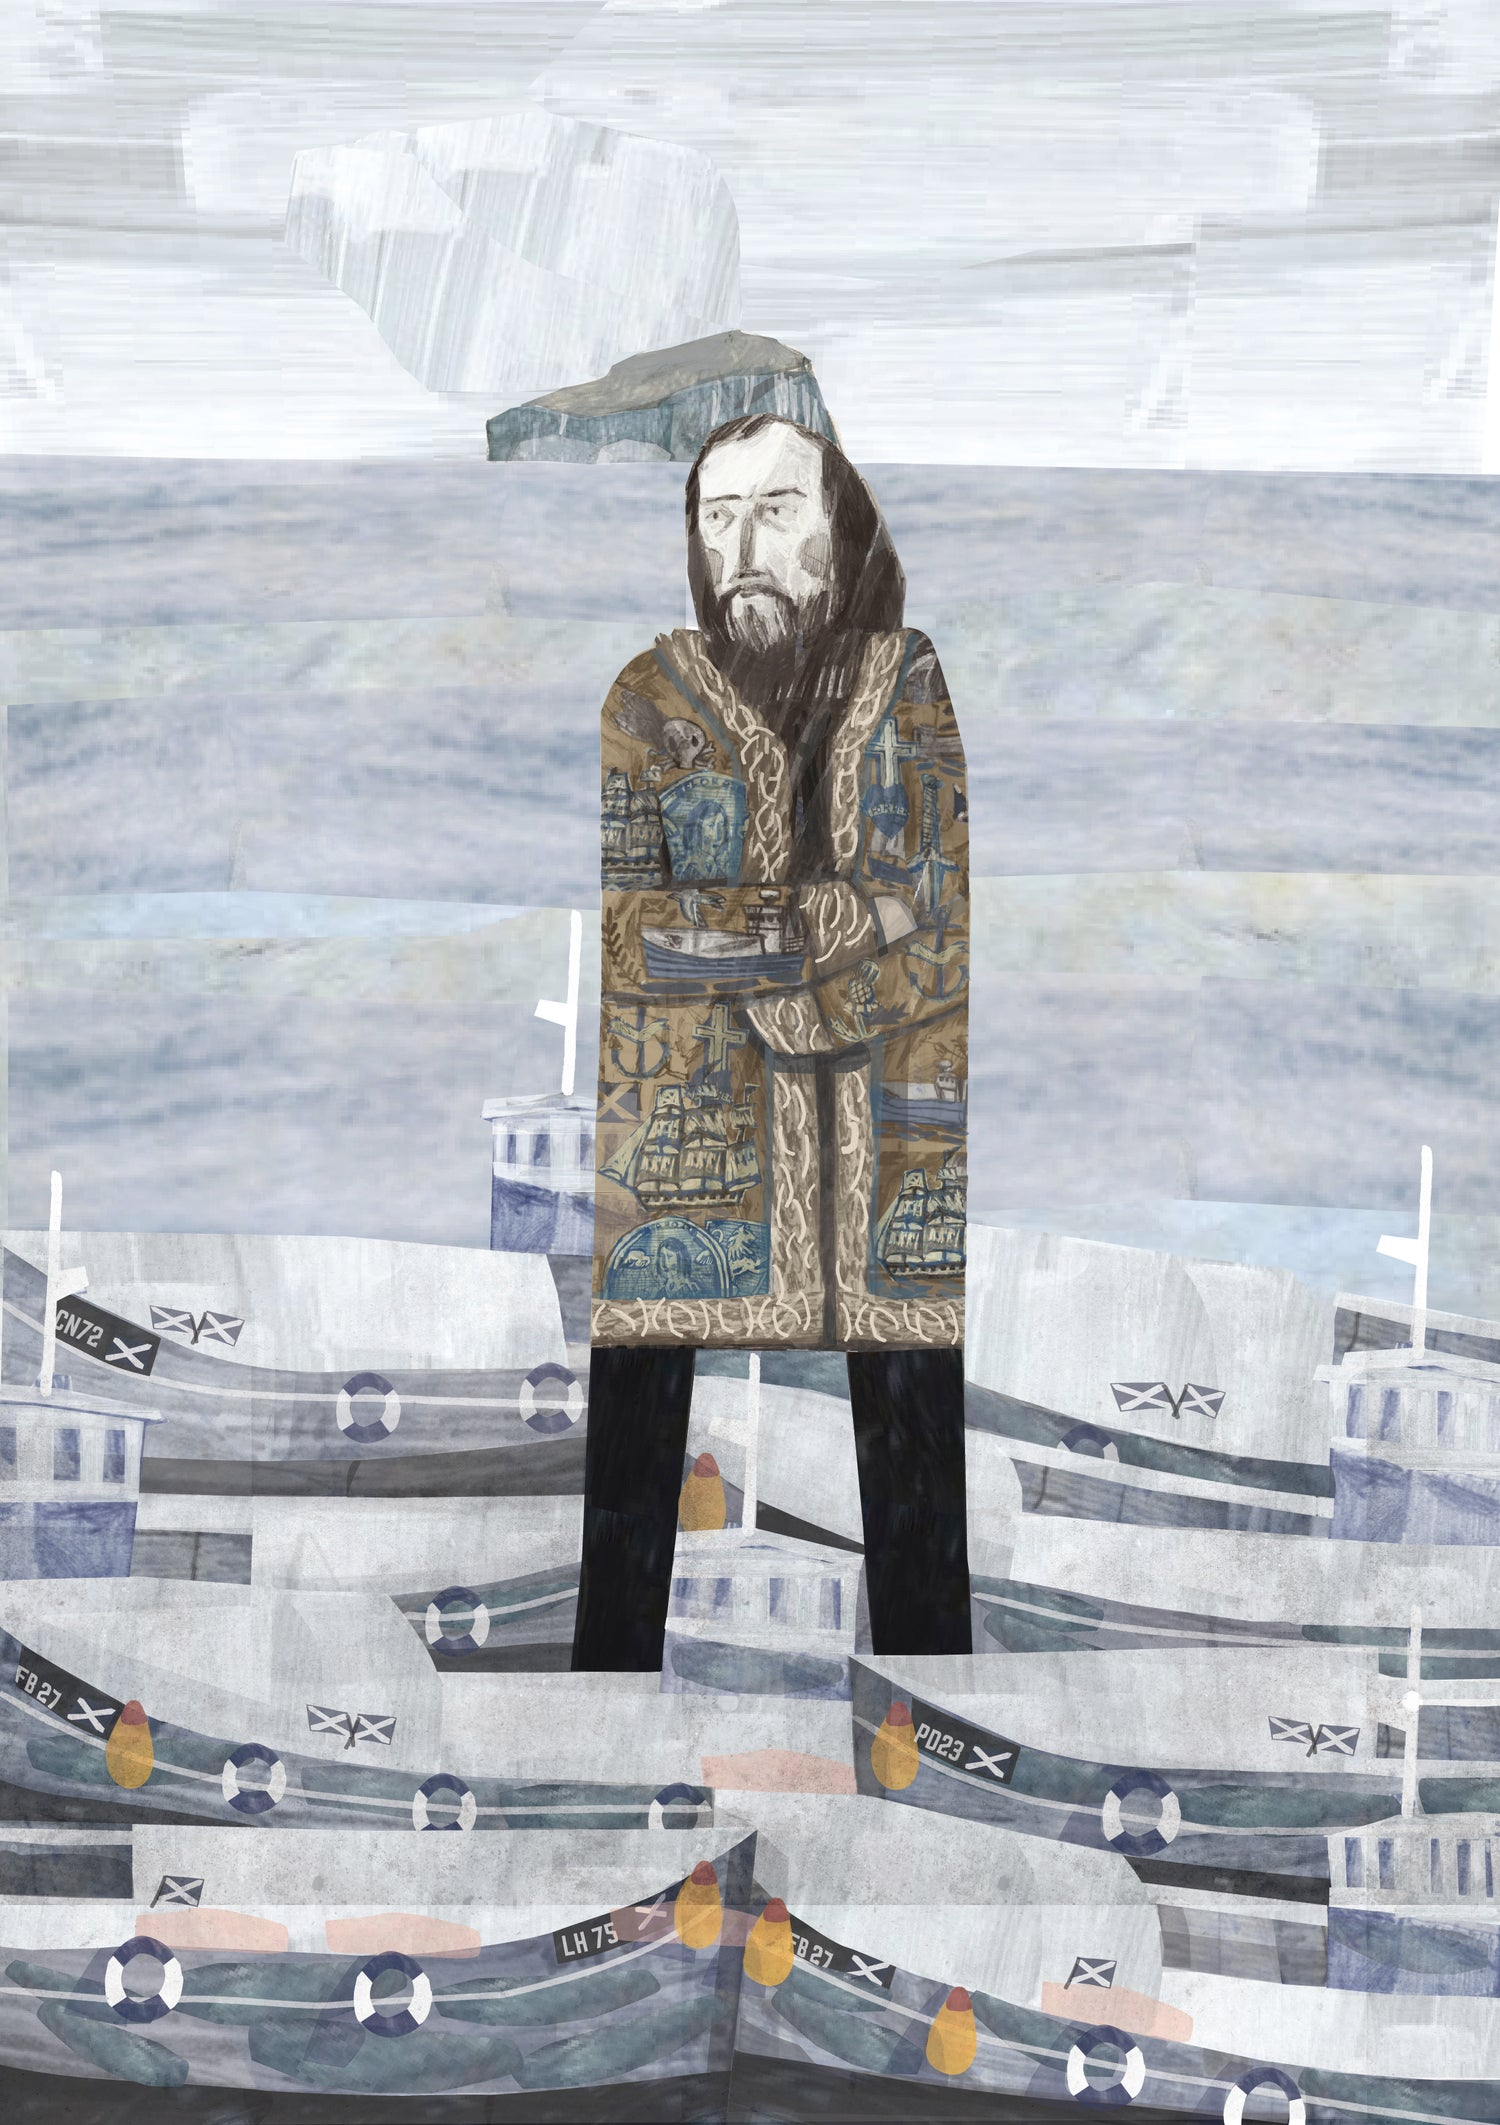 Image of John Bellany is wearing his Afghan coat as he watches the boats in Port Seton